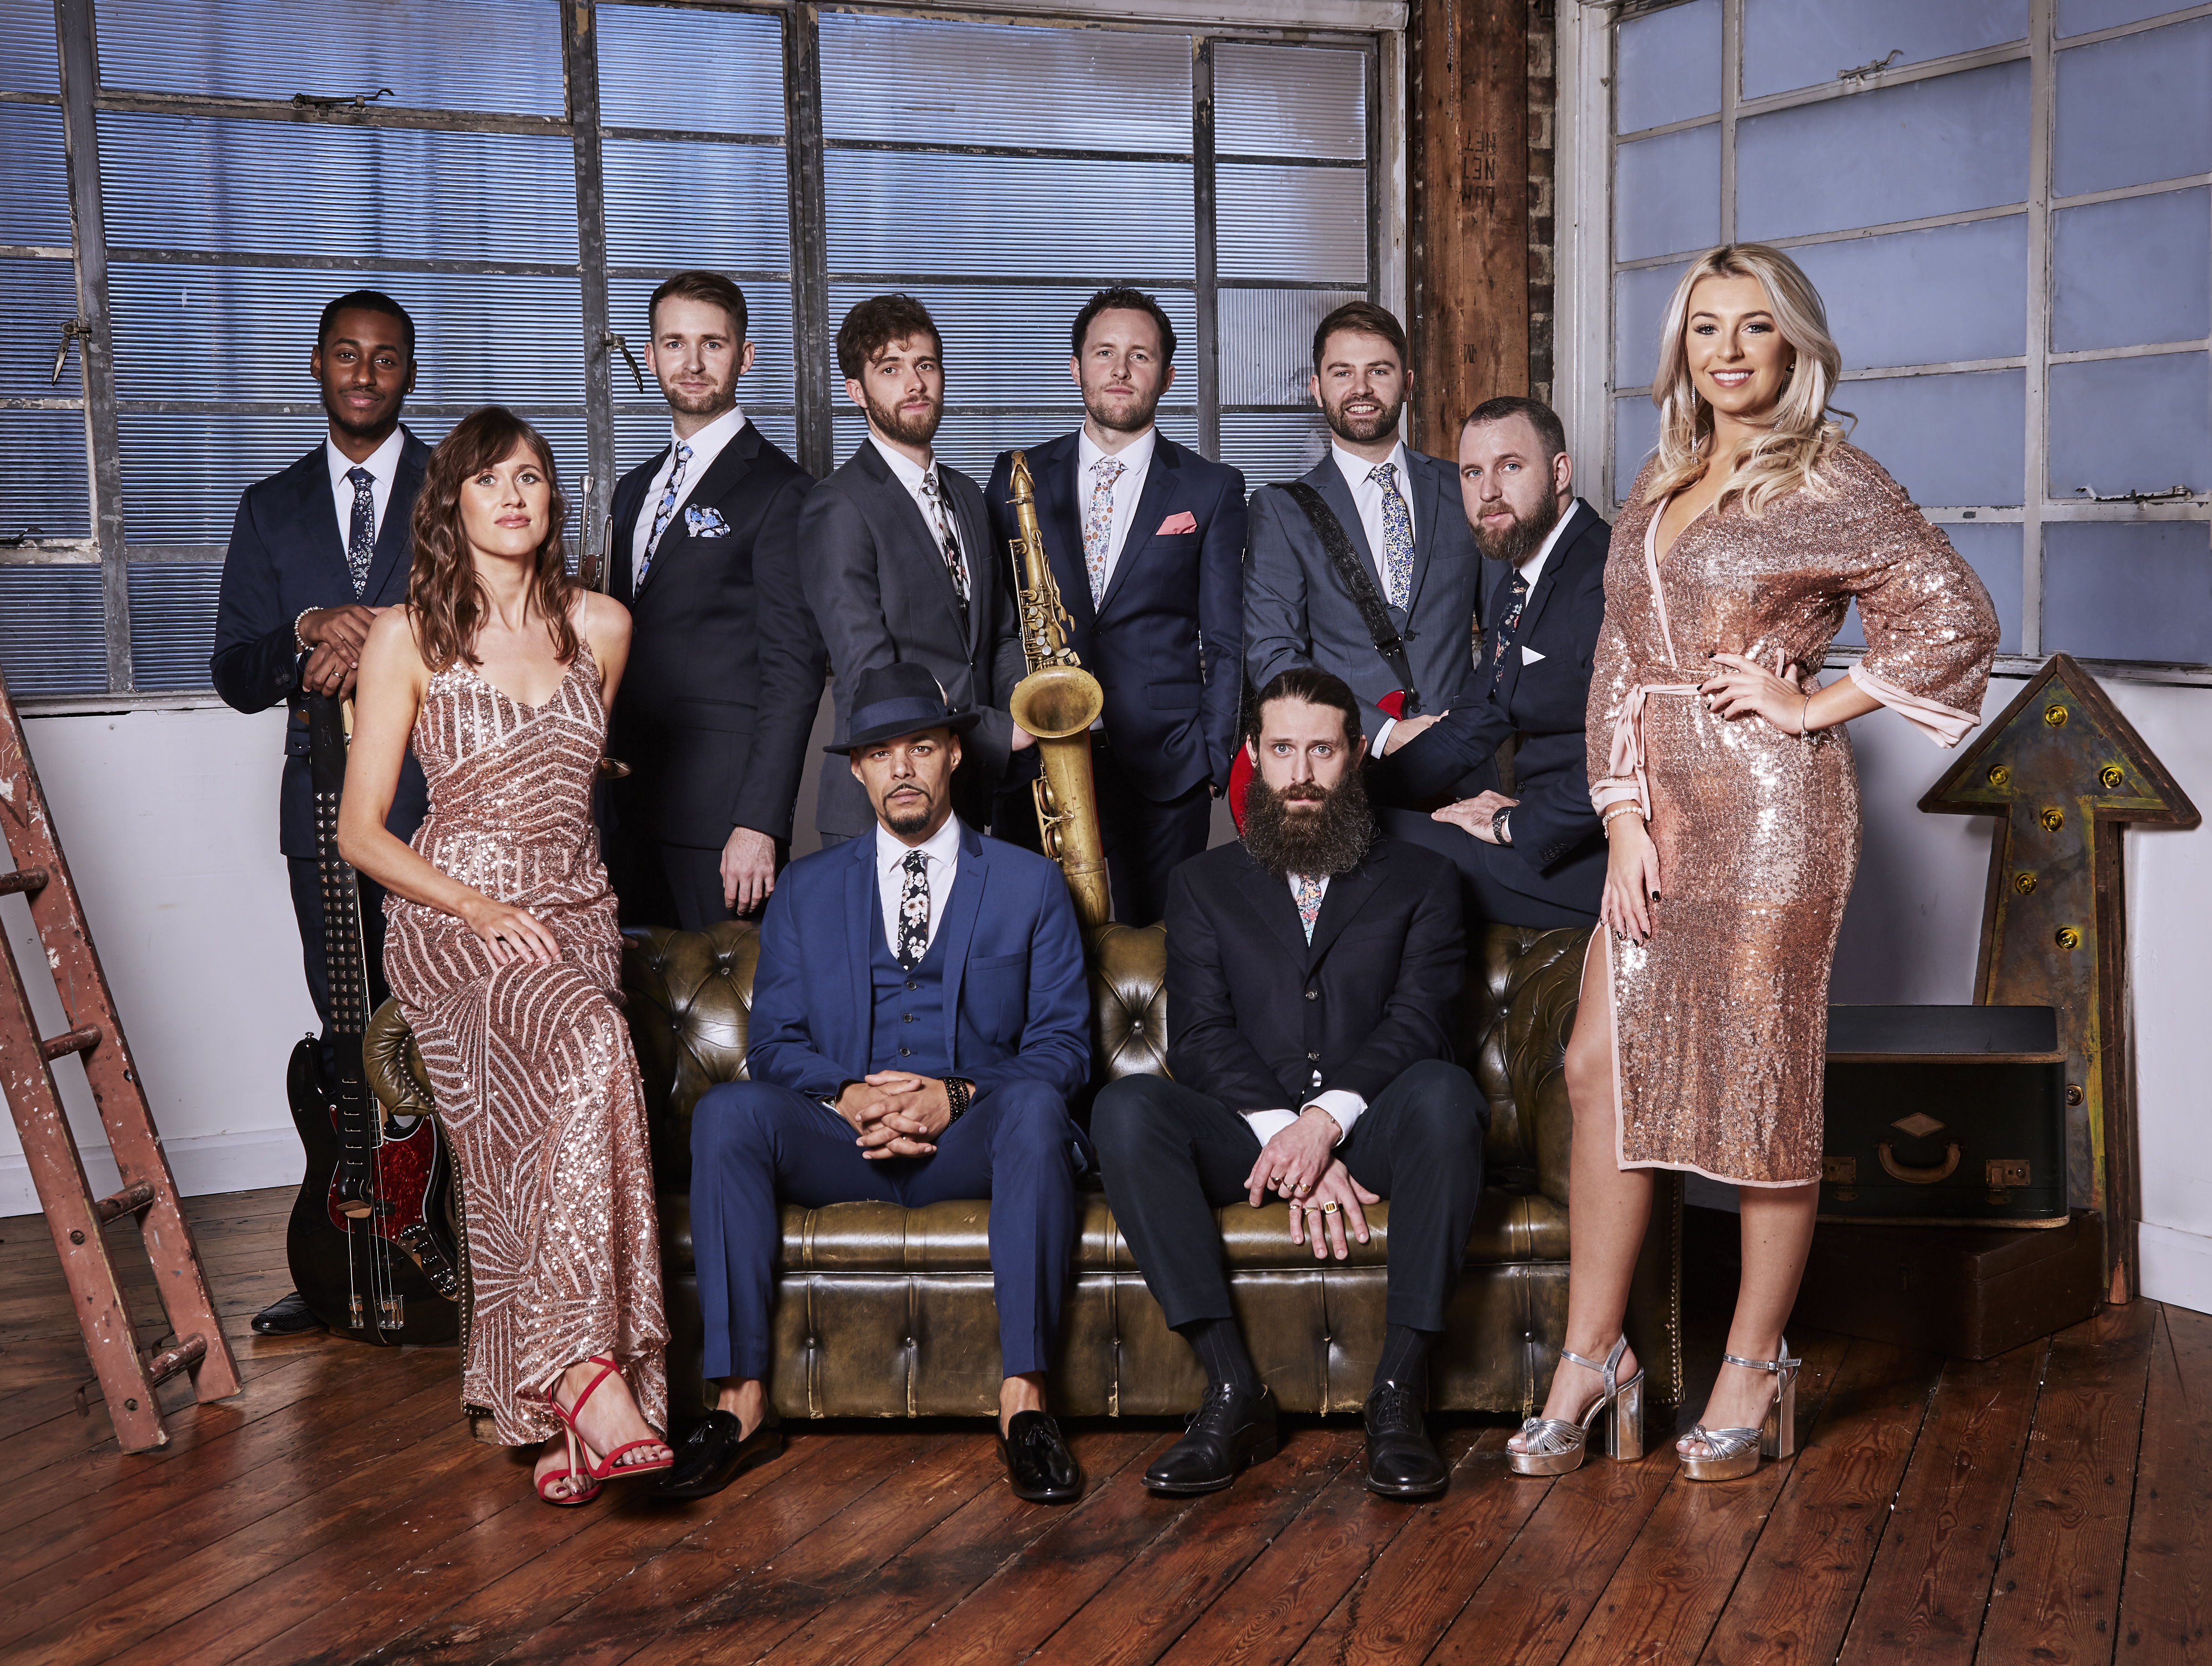 The London Soul Band 10 piece 2